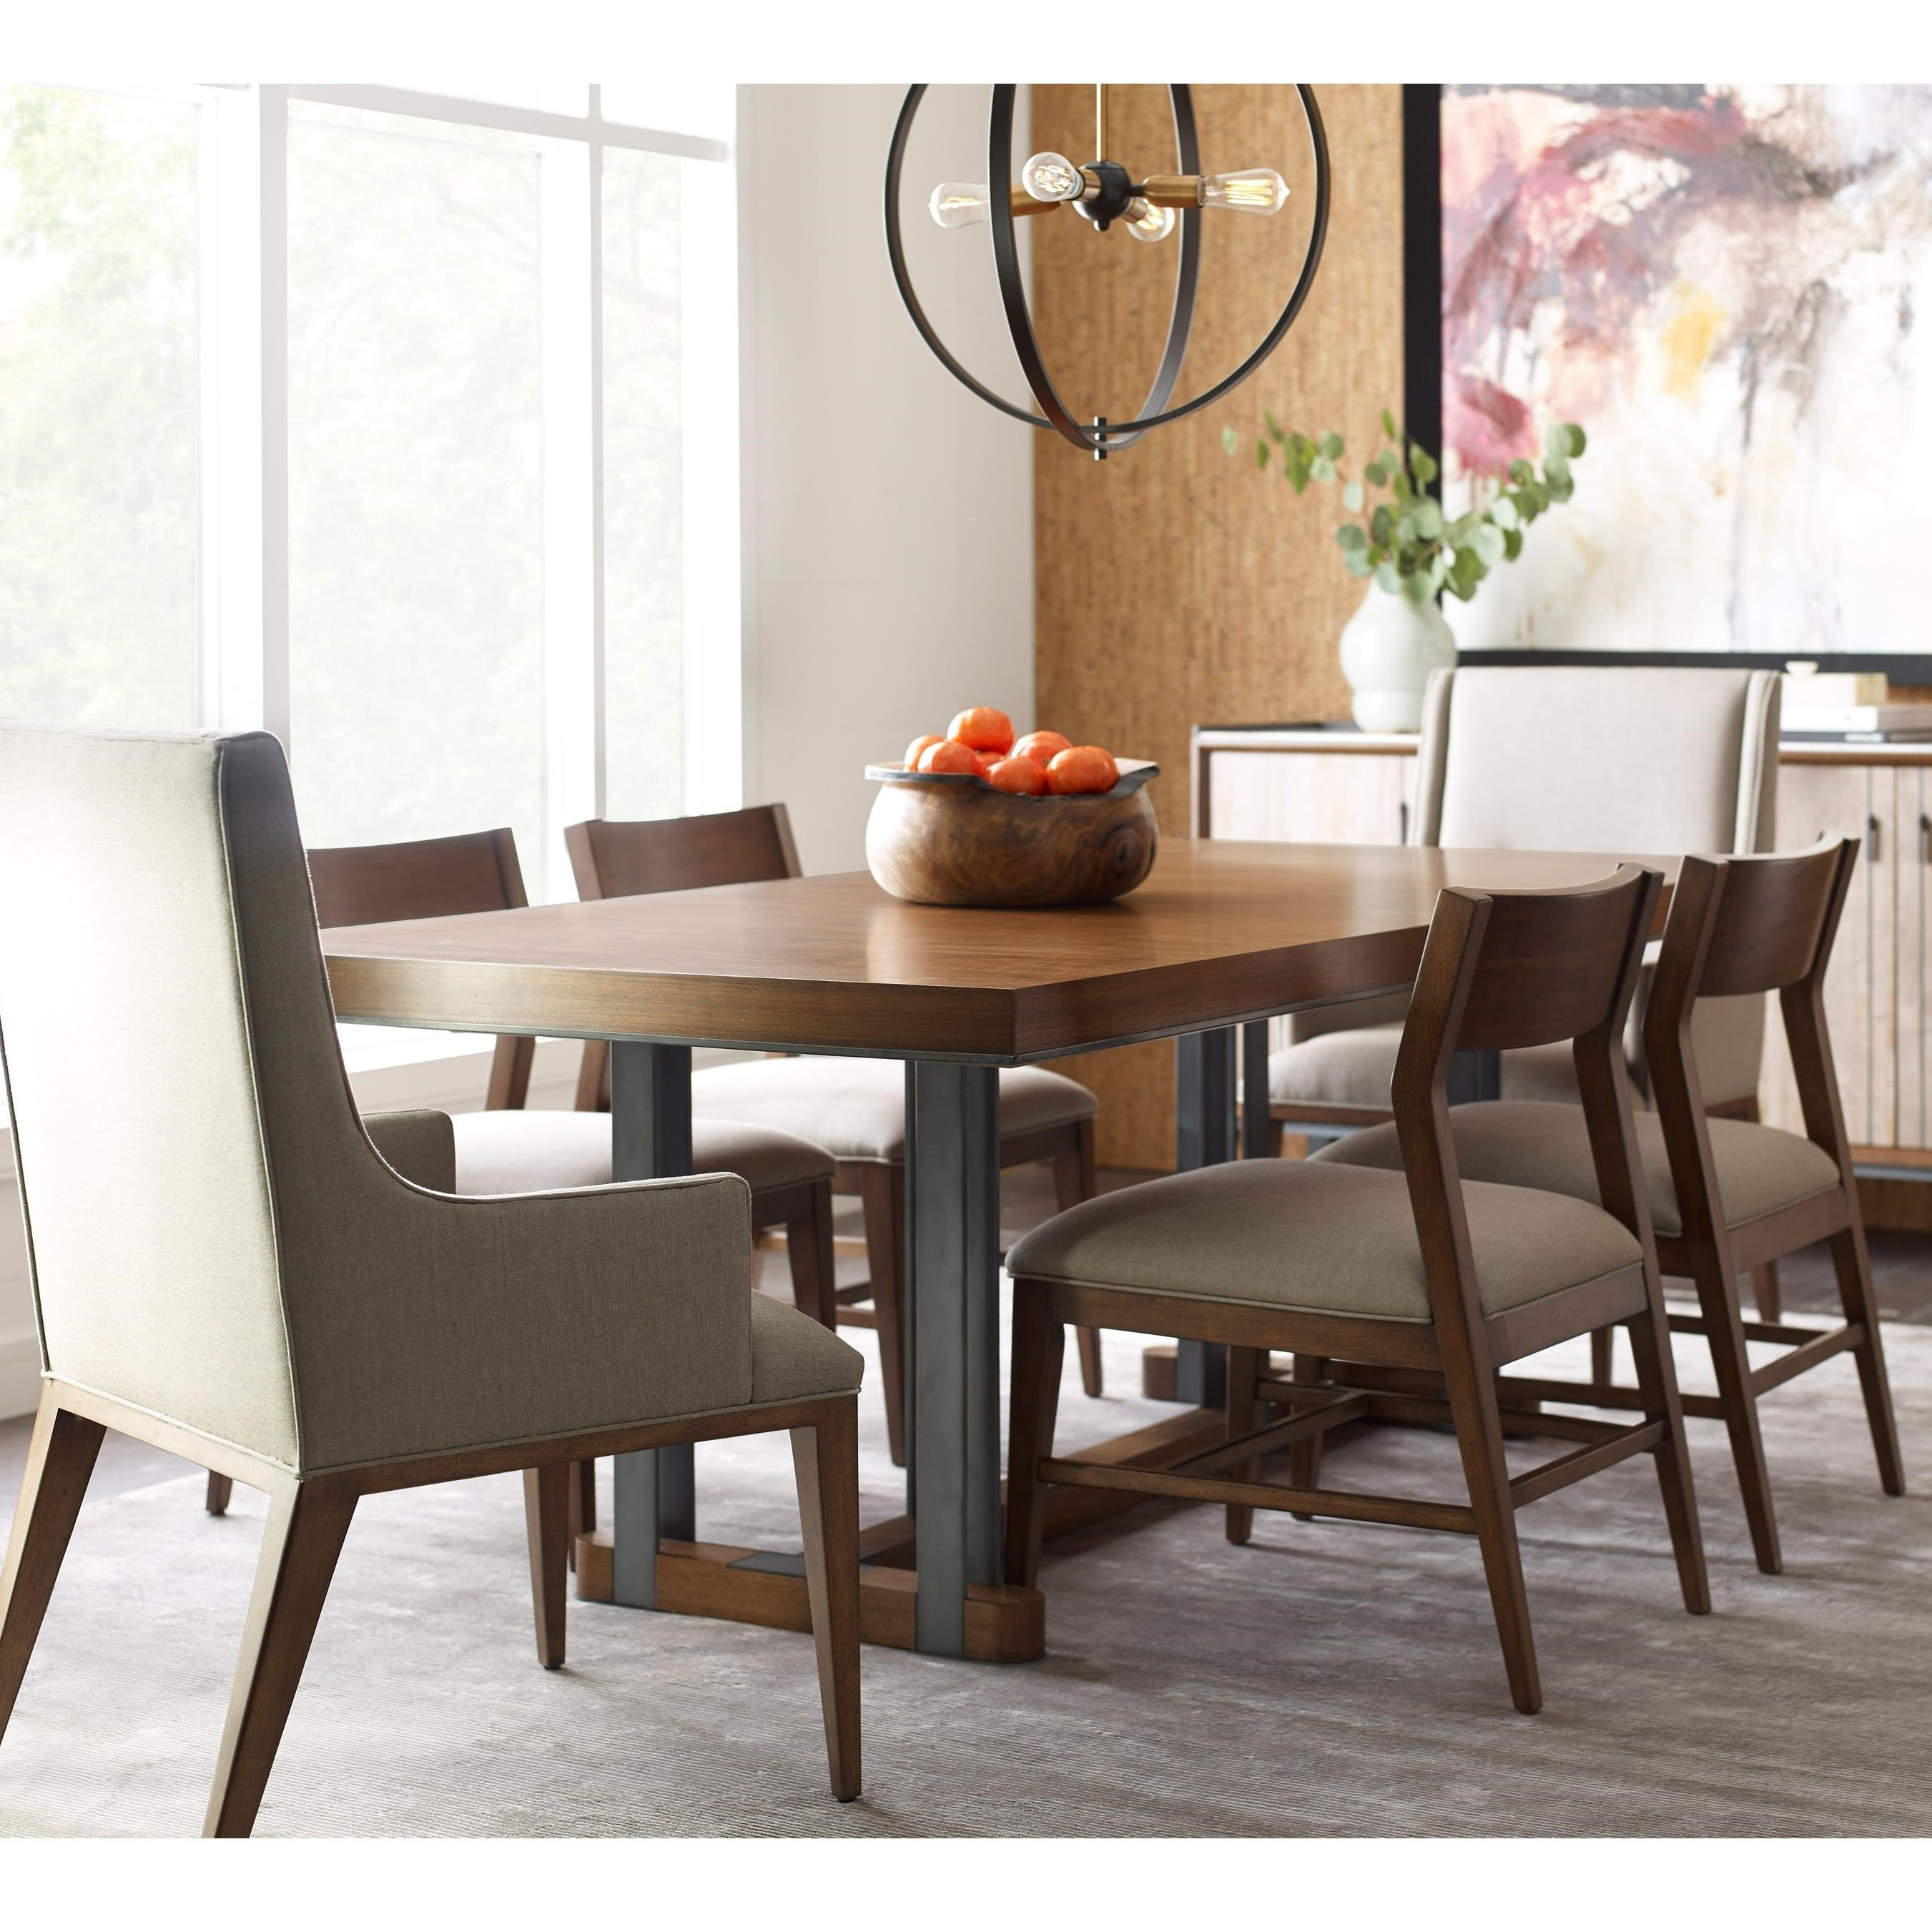 Modern Synergy Rectangular Dining Table and Chair Set by American Drew at Stoney Creek Furniture